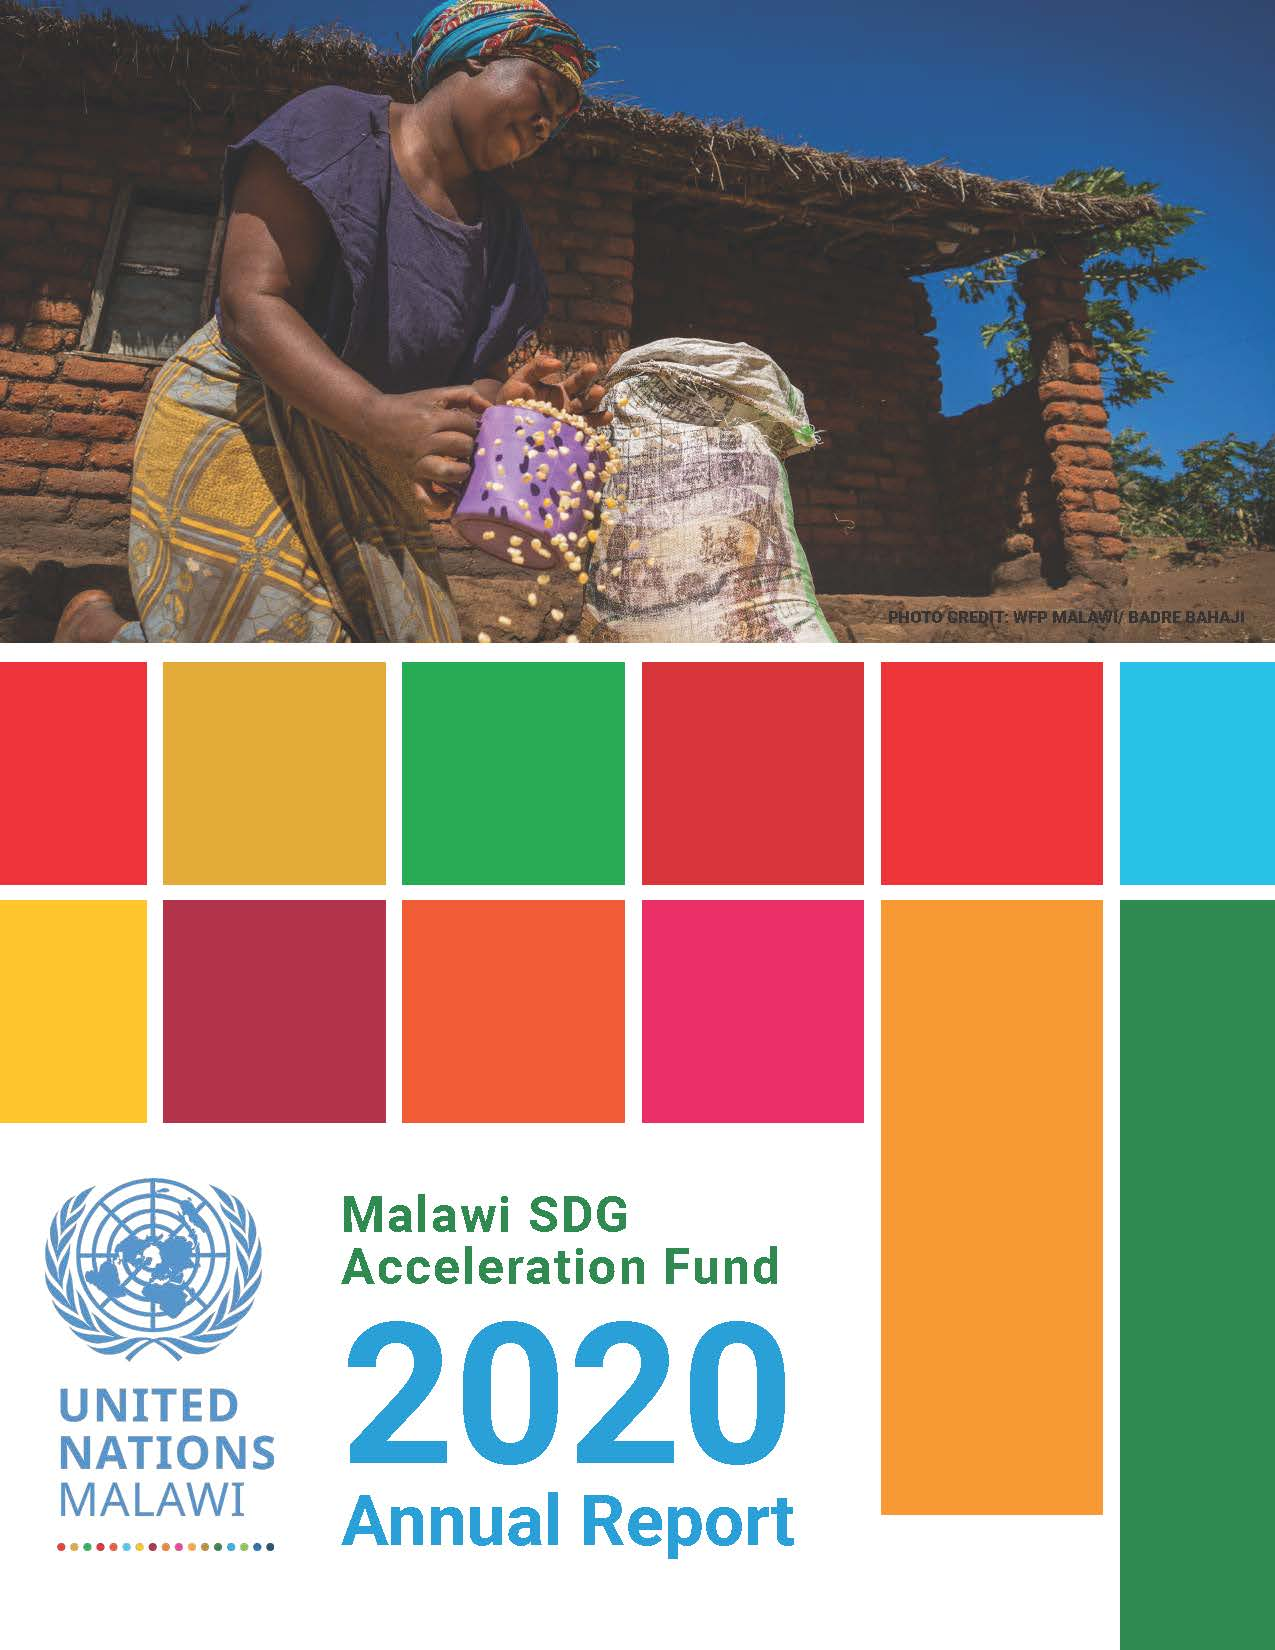 Malawi SDG Acceleration Fund 2020 Annual Report